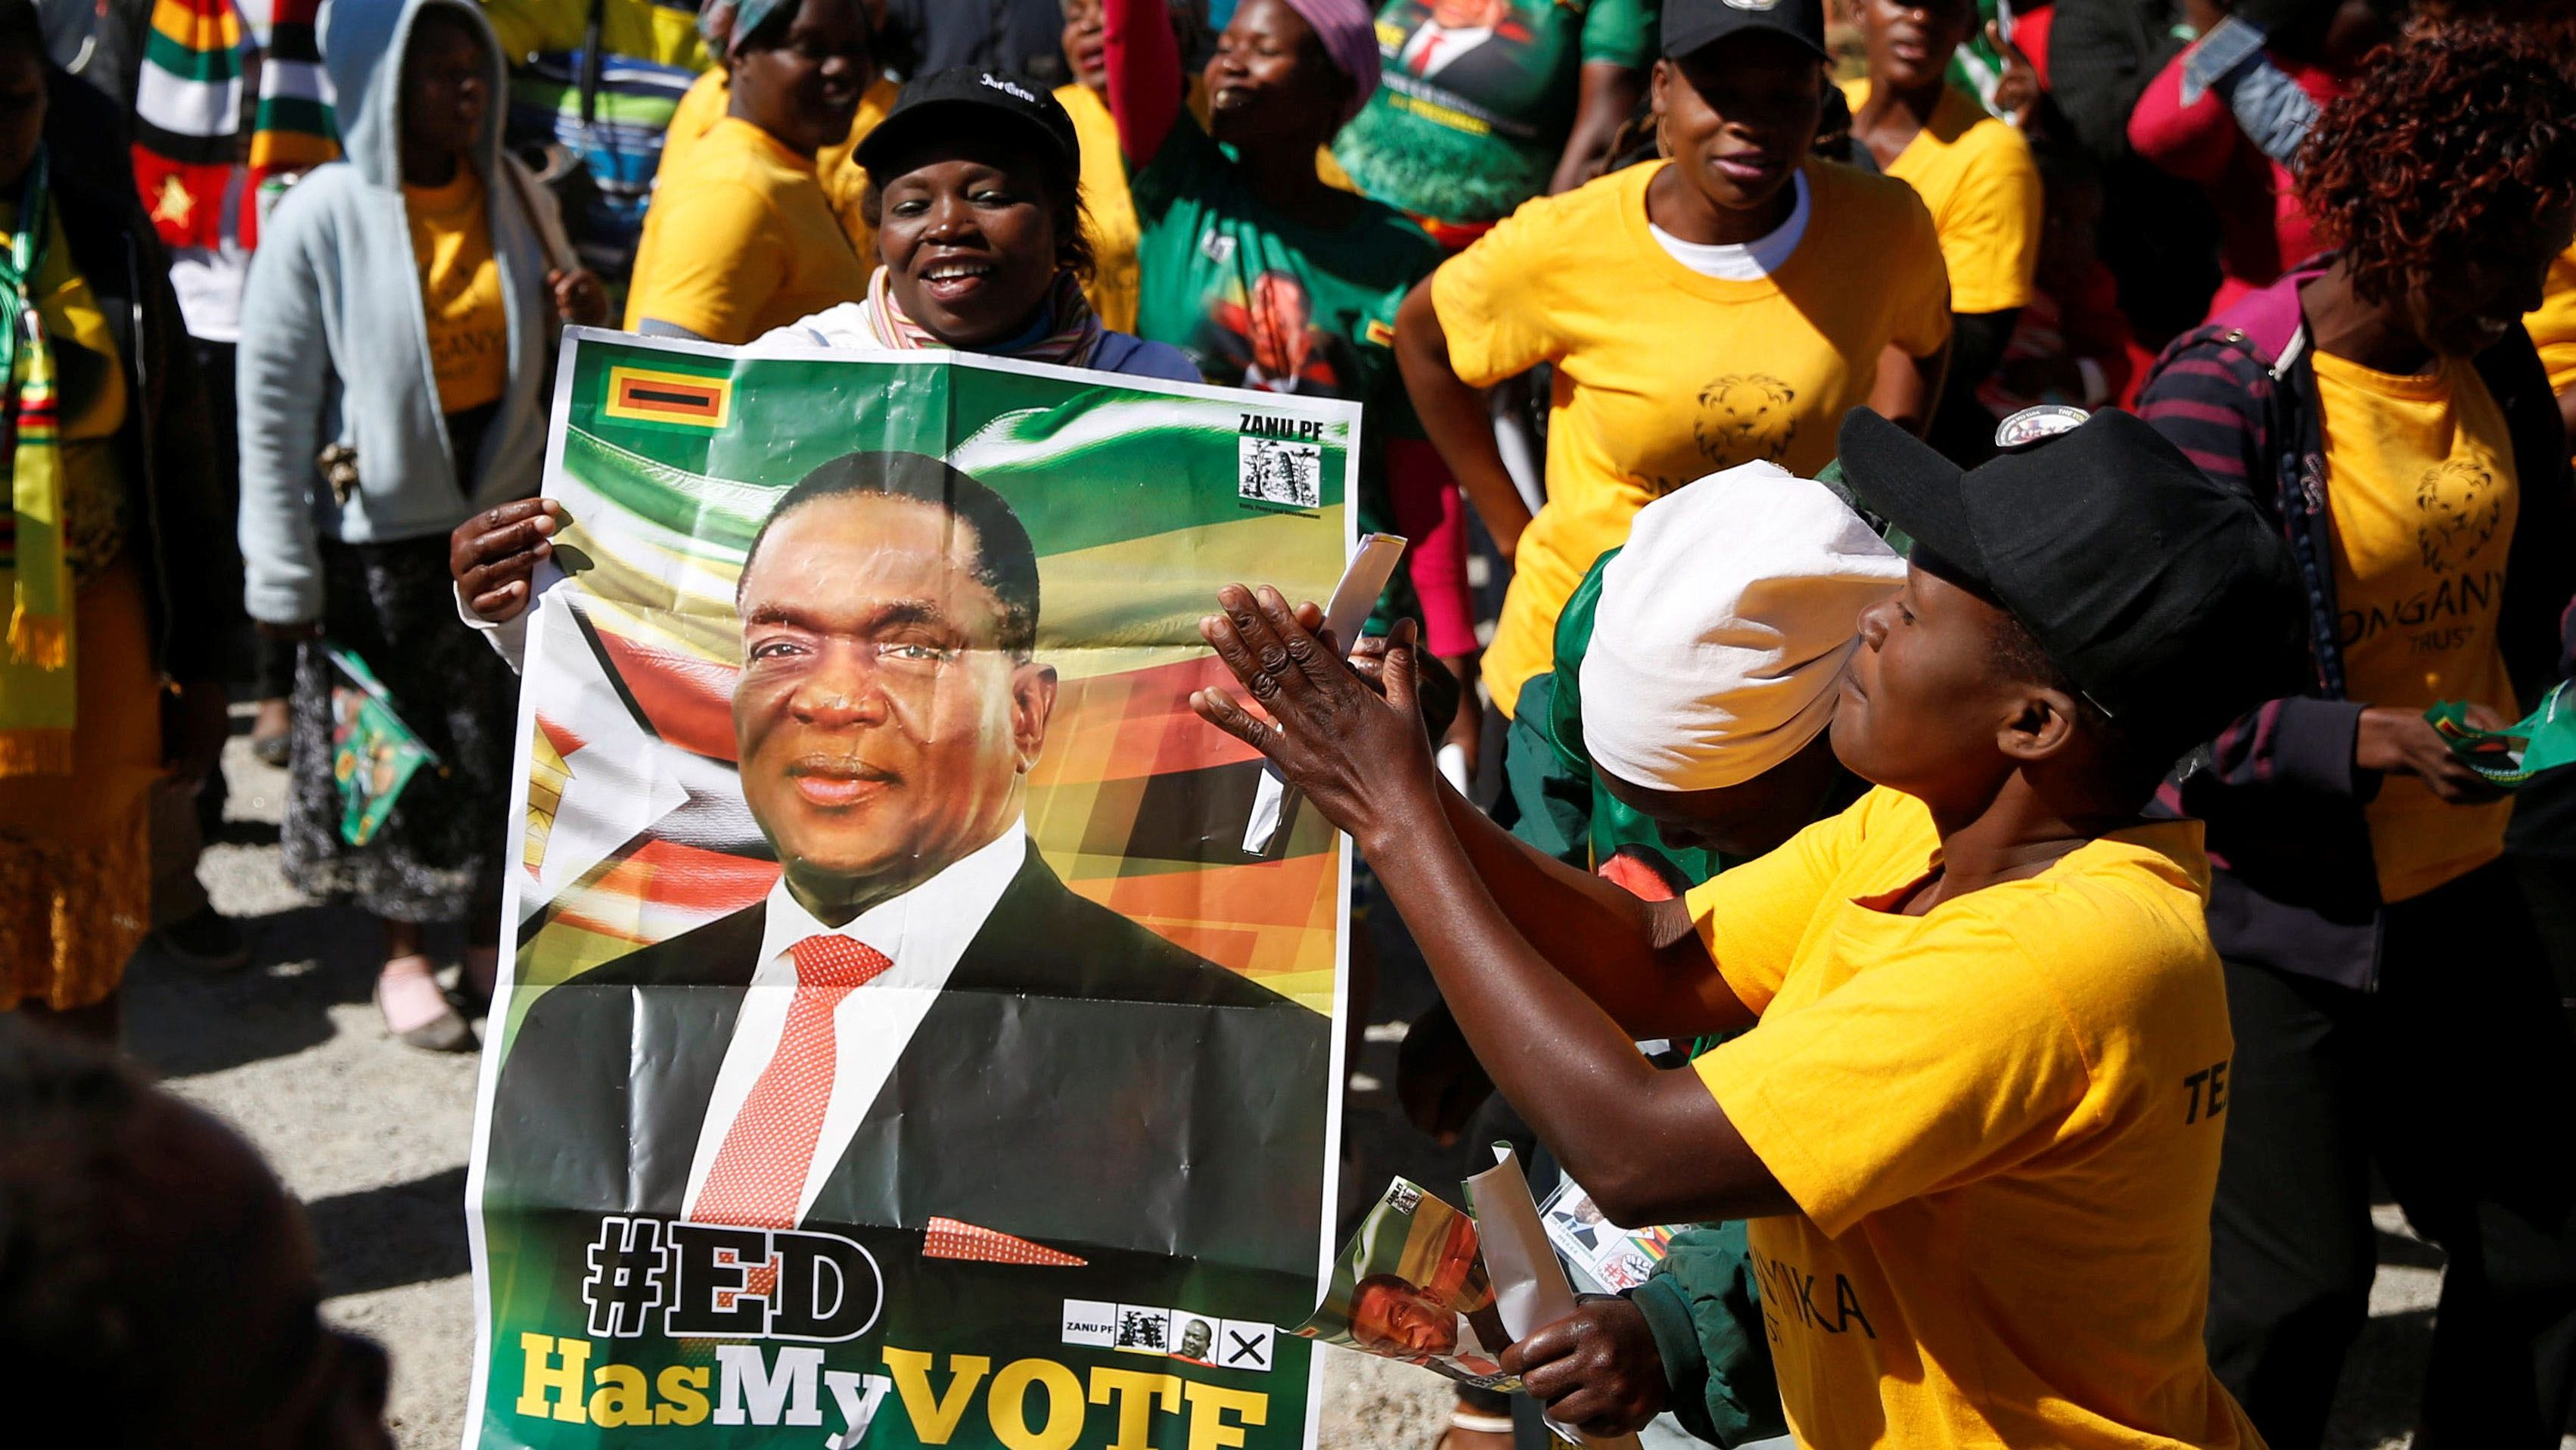 Supporters of President Emmerson Mnangagwa's ZANU PF party gather to march for non-violent, free and fair general elections in Harare